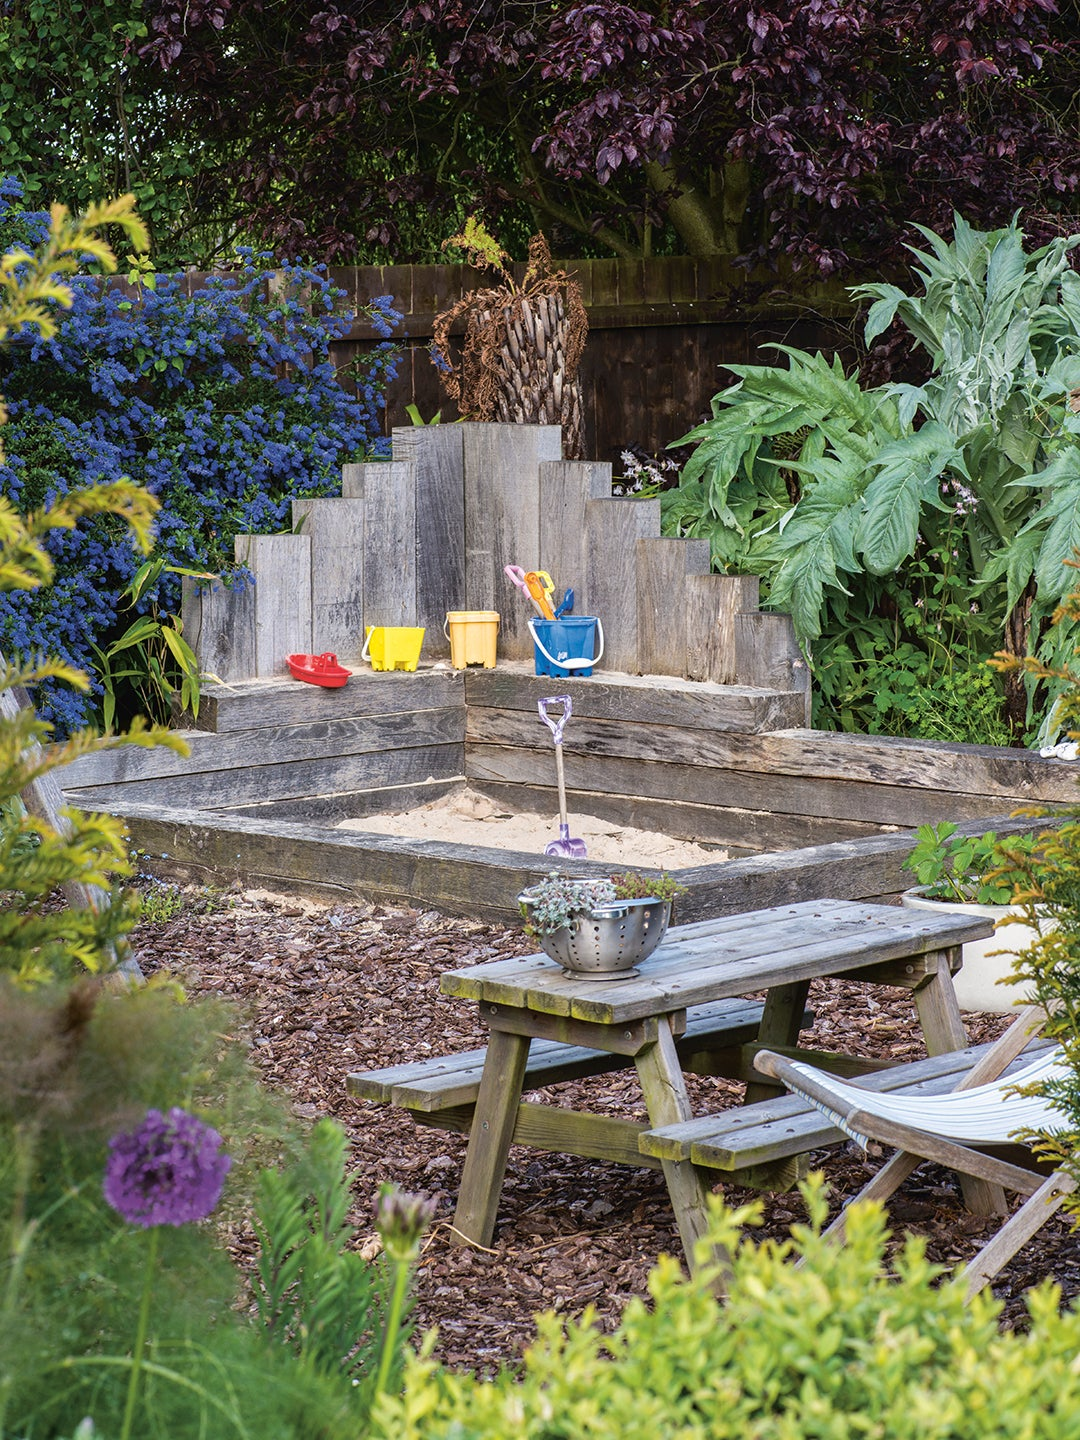 00-FEATURE-gardening-for-kids-domino